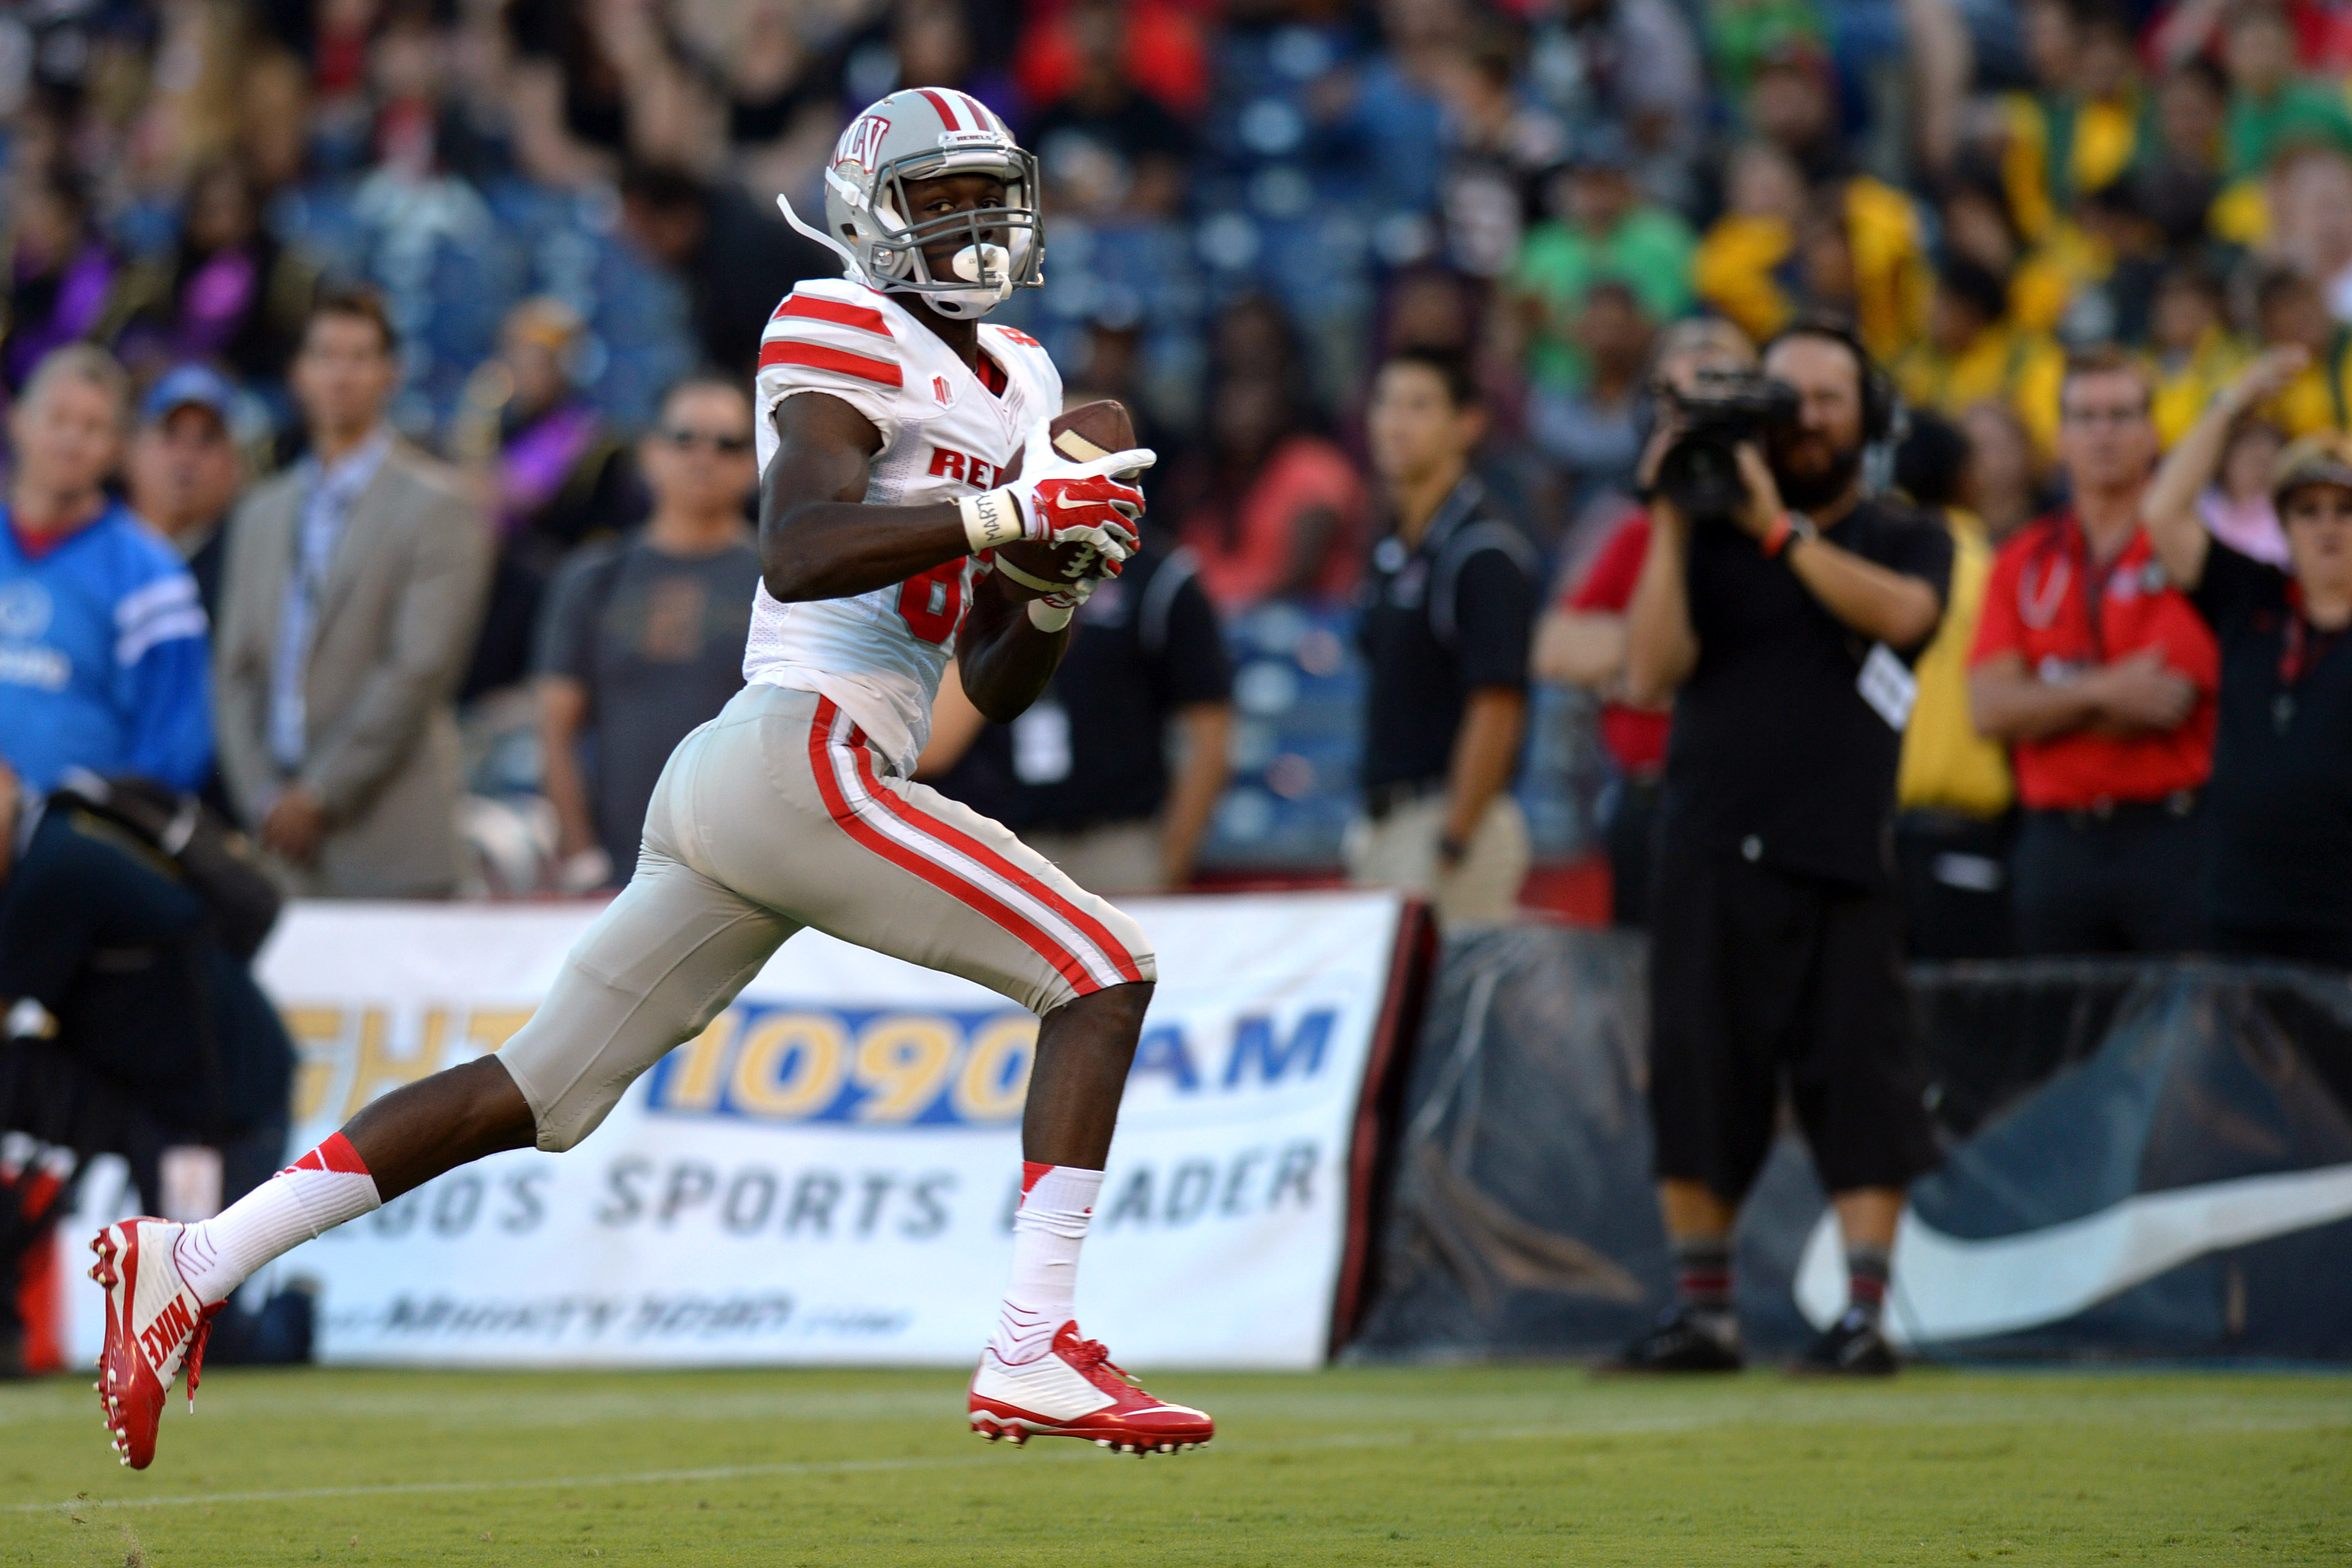 Devonte Boyd is a big time playmaker at receiver for the UNLV Rebels